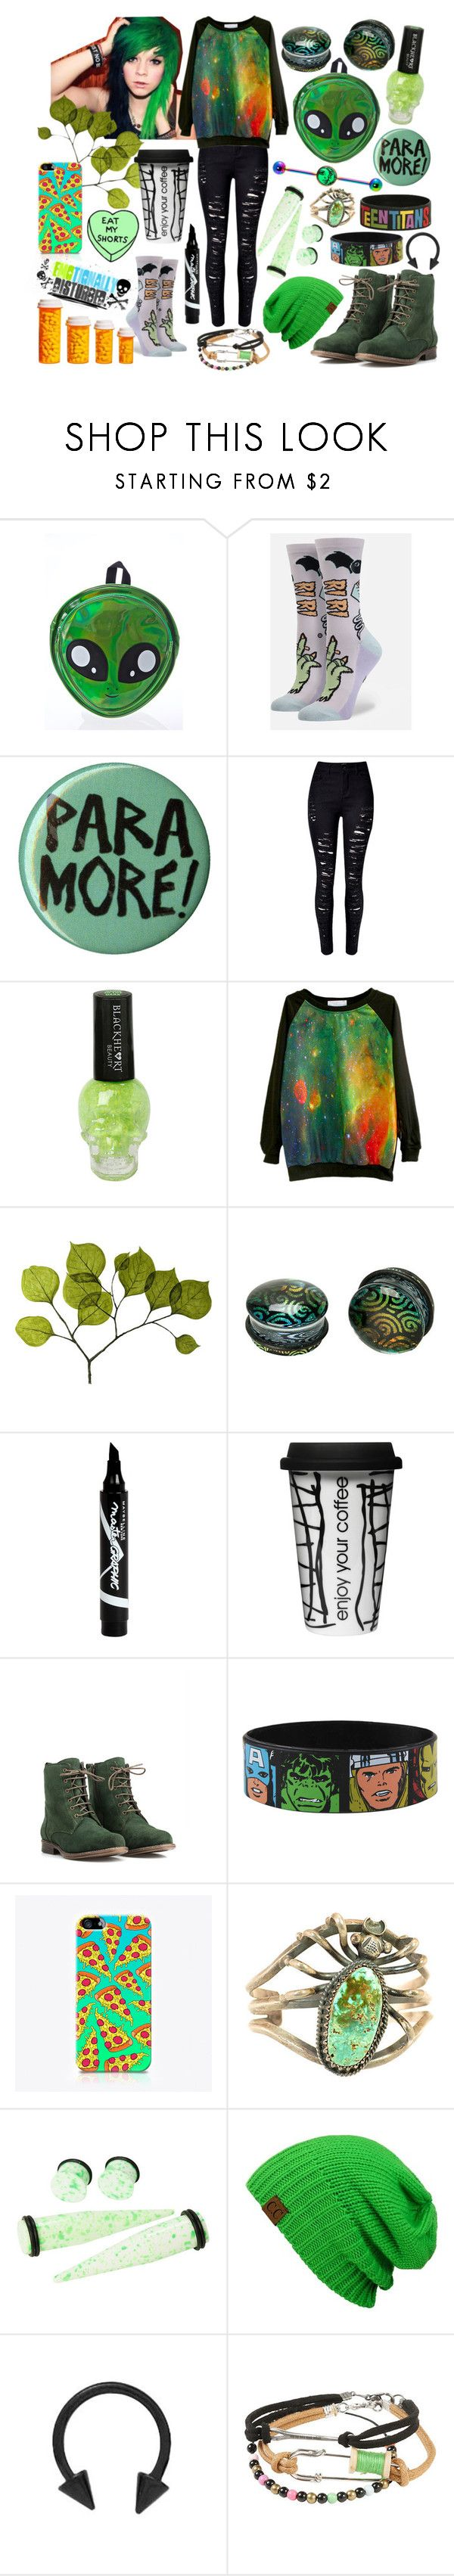 """Mean Green Fightin' Machine"" by xxx-marshmallow-of-death-xxx ❤ liked on Polyvore featuring Love Quotes Scarves, Miss Me, Comeco, Stance, Hot Topic, Dot & Bo, Maybelline, JJ Footwear, Marvel and The Small Print."